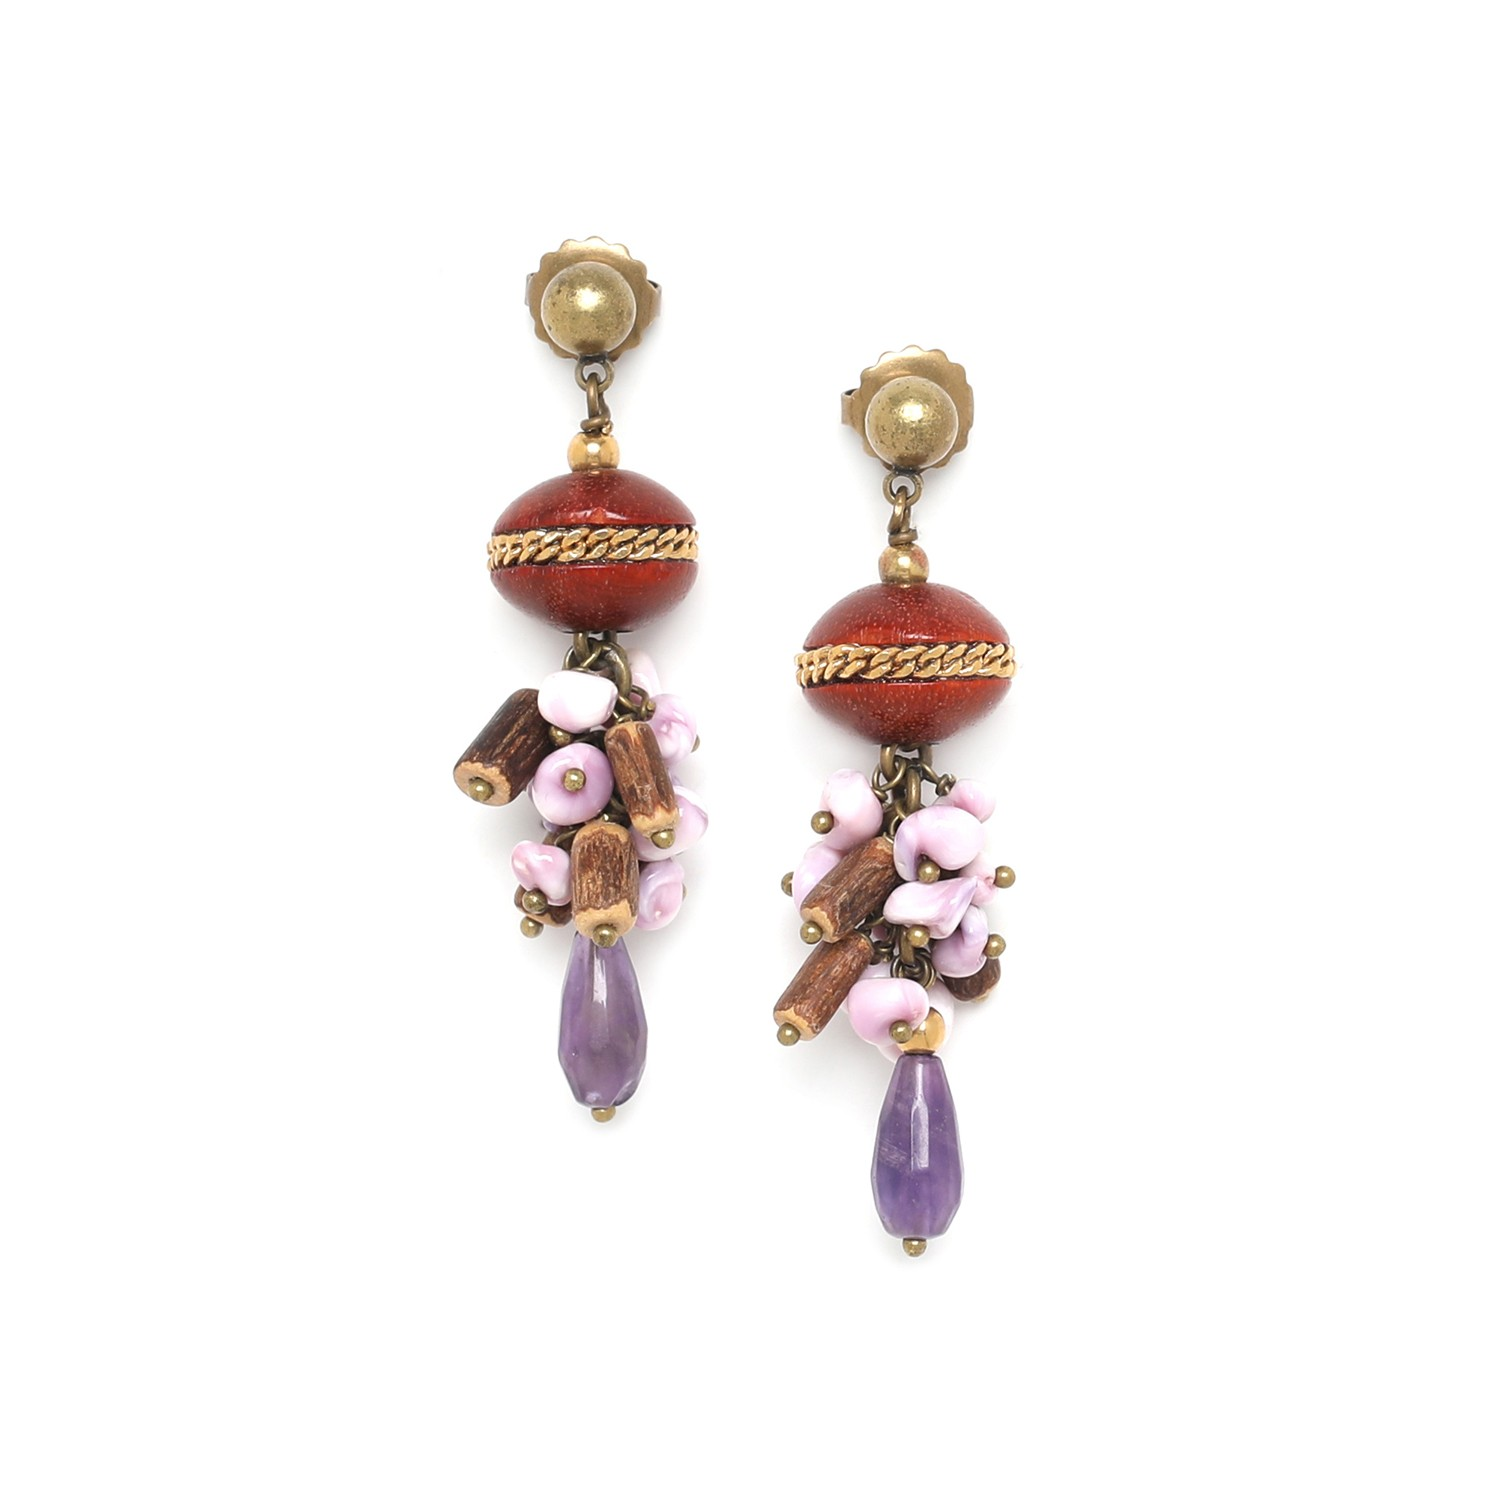 MELTING POT grape earrings